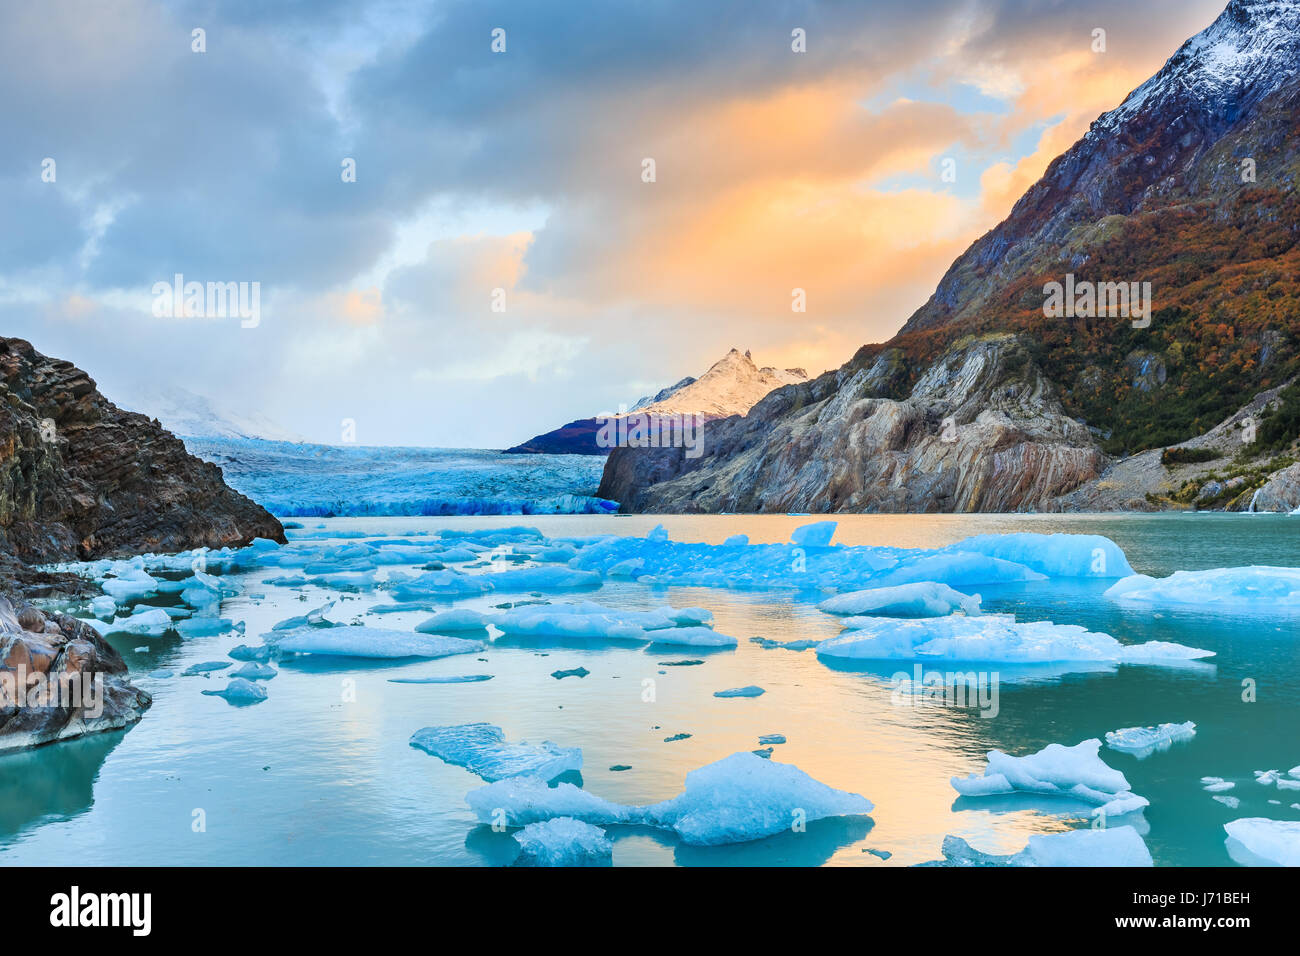 Torres Del Paine National Park, Chile. Grey glacier. - Stock Image